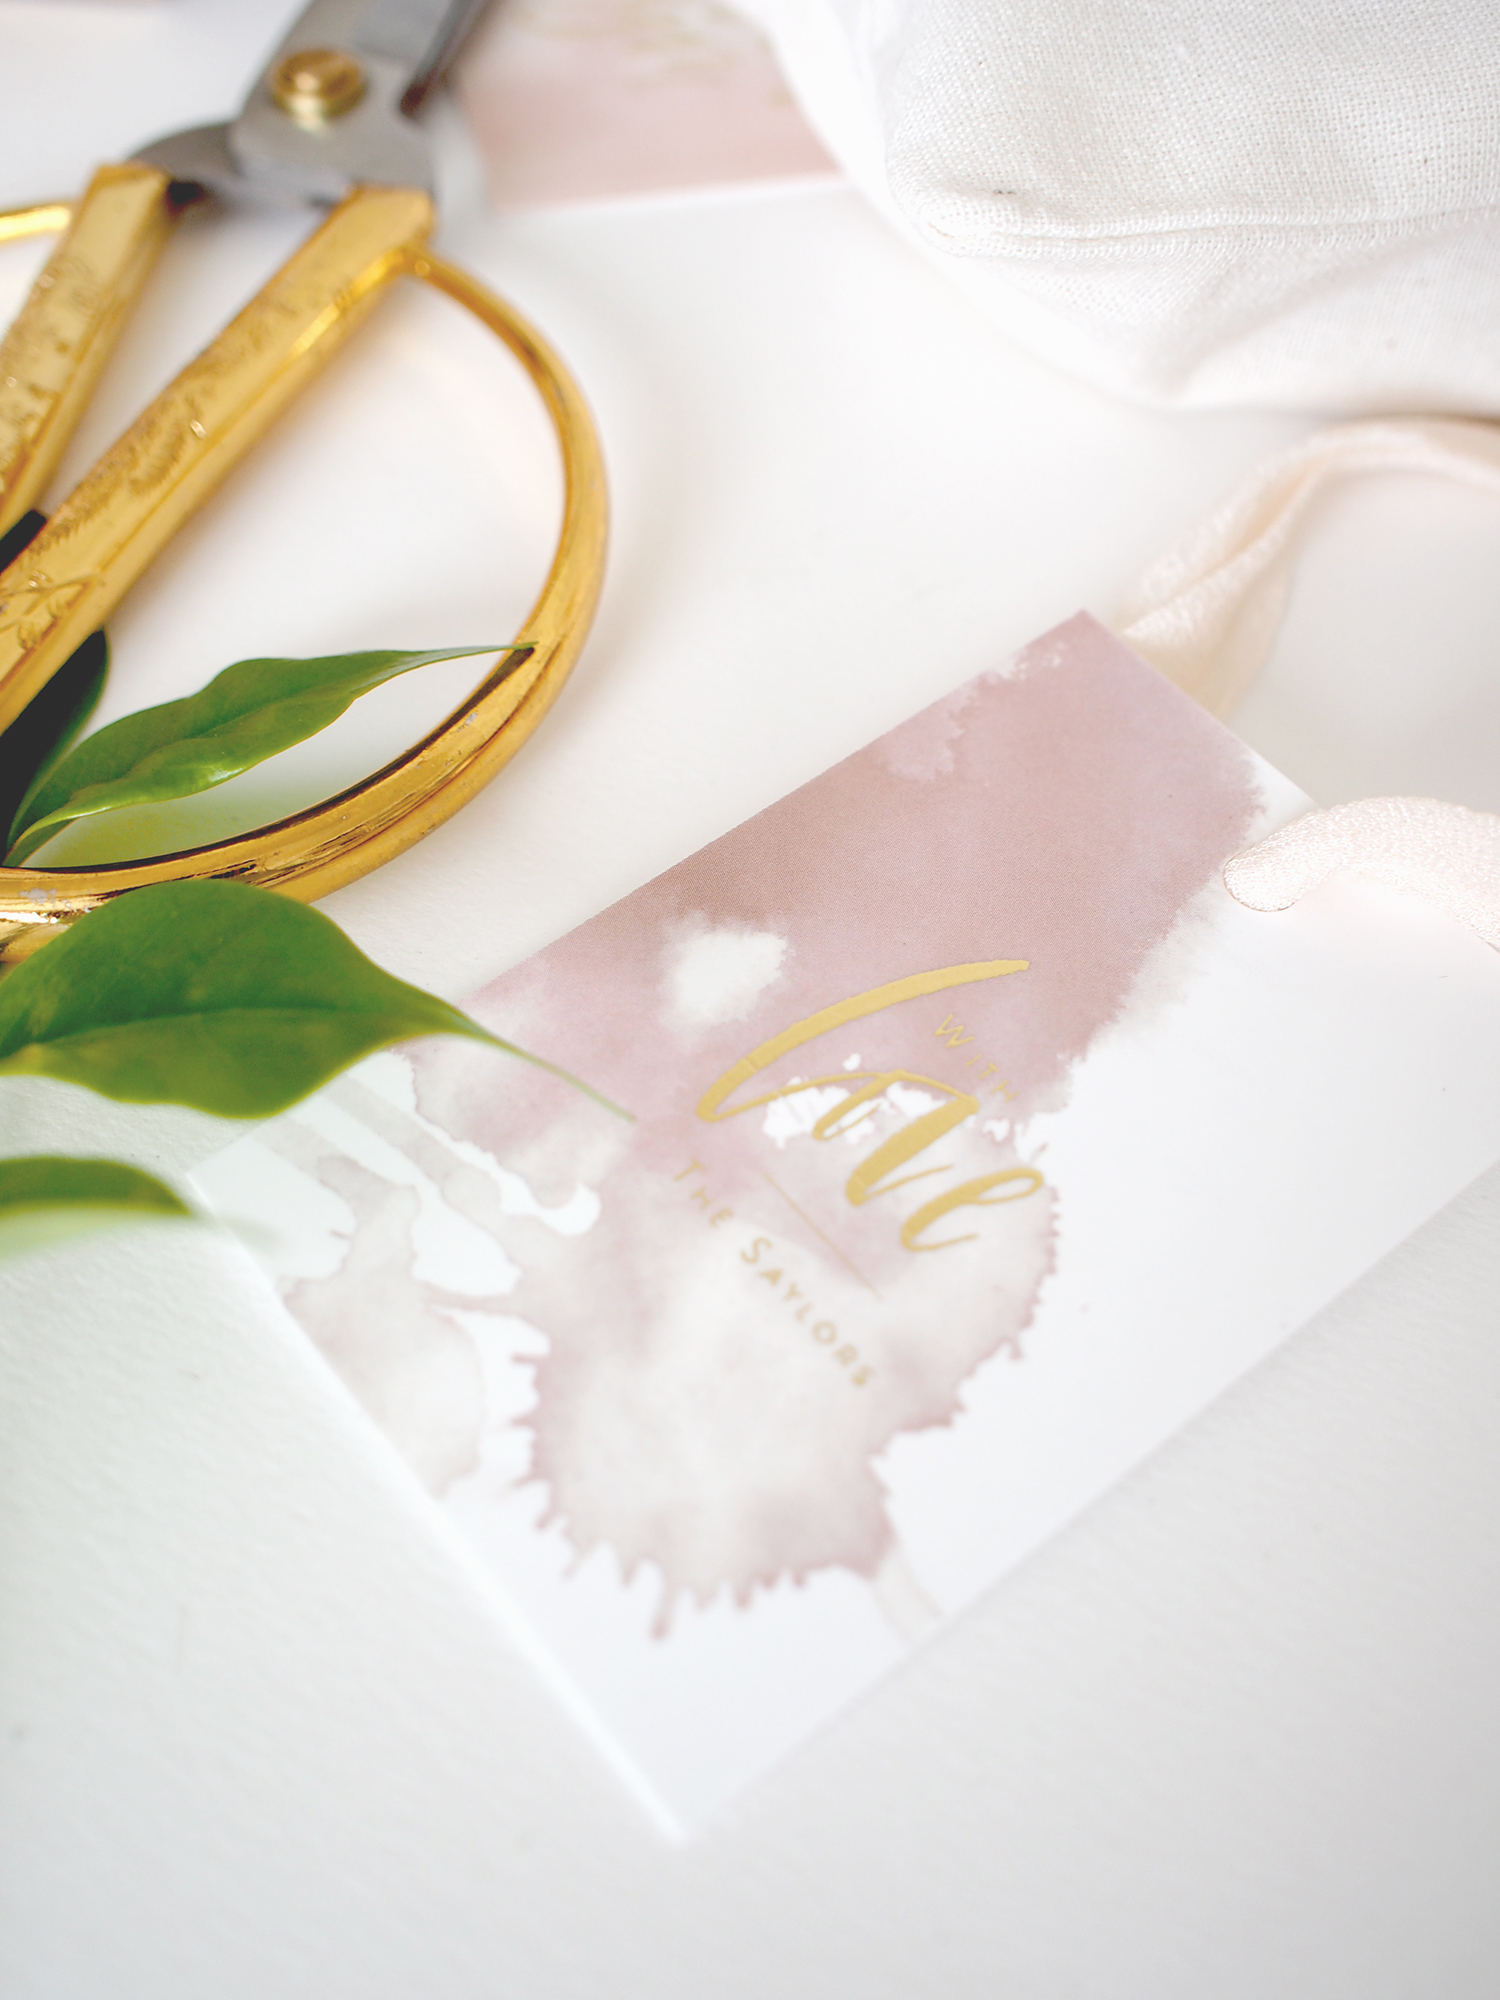 Custom gift tags with gold foil for wedding favors or gifts   A Fabulous Fete